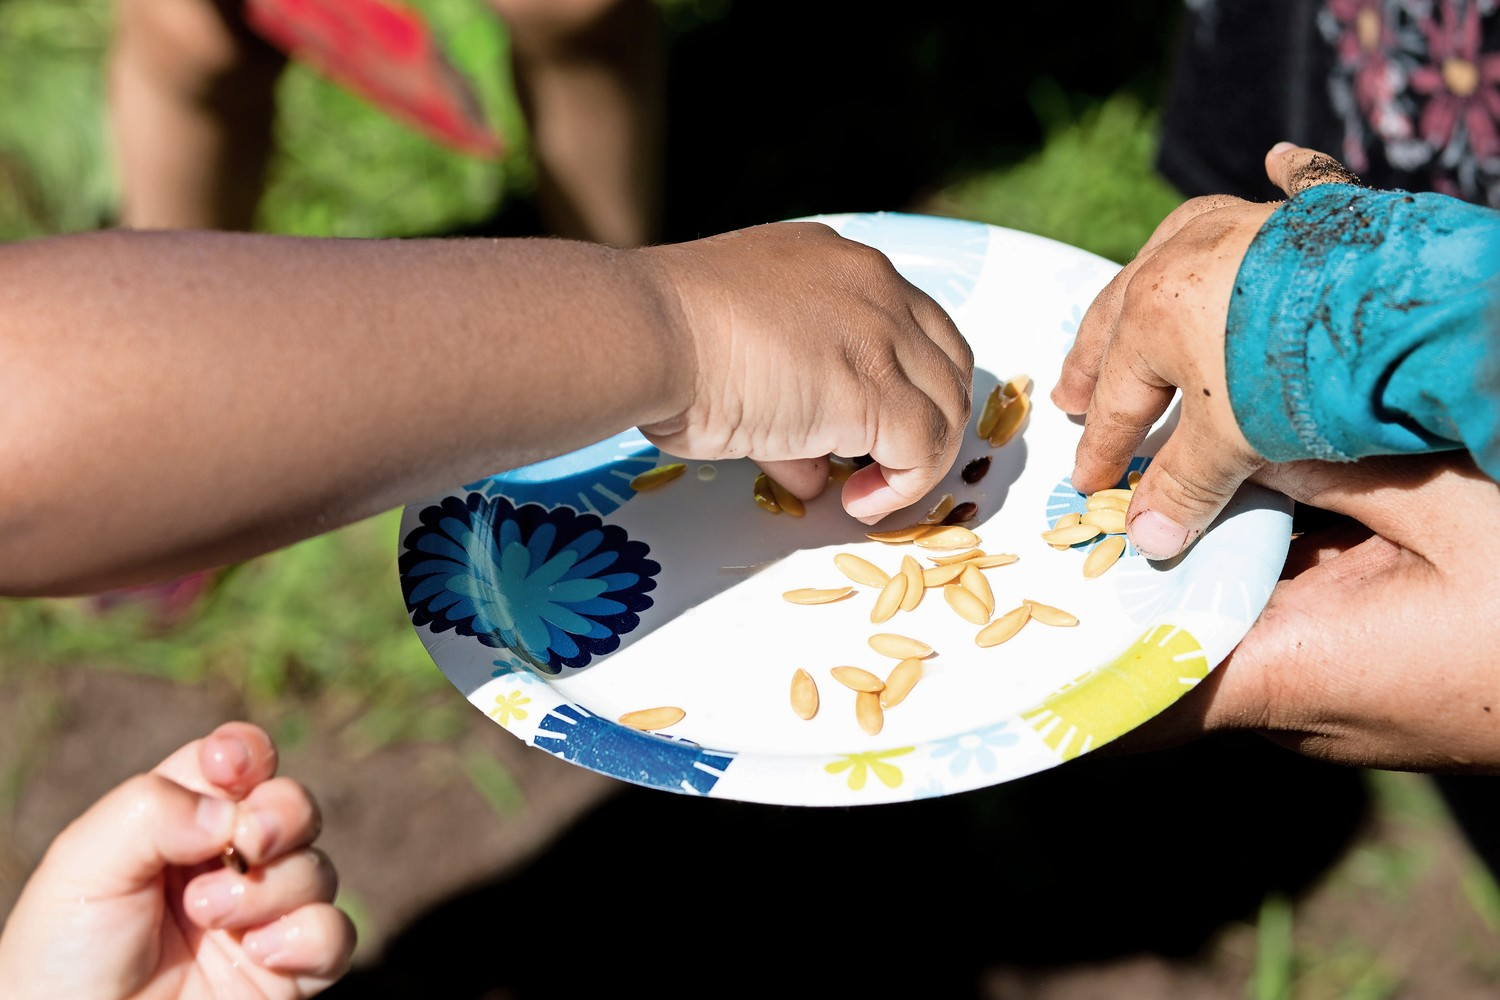 Riverdale Presbyterian Church Nursery School students take fruit seeds from a paper plate that they will then plant as part of the school's 'Explorations in Nature' summer program.